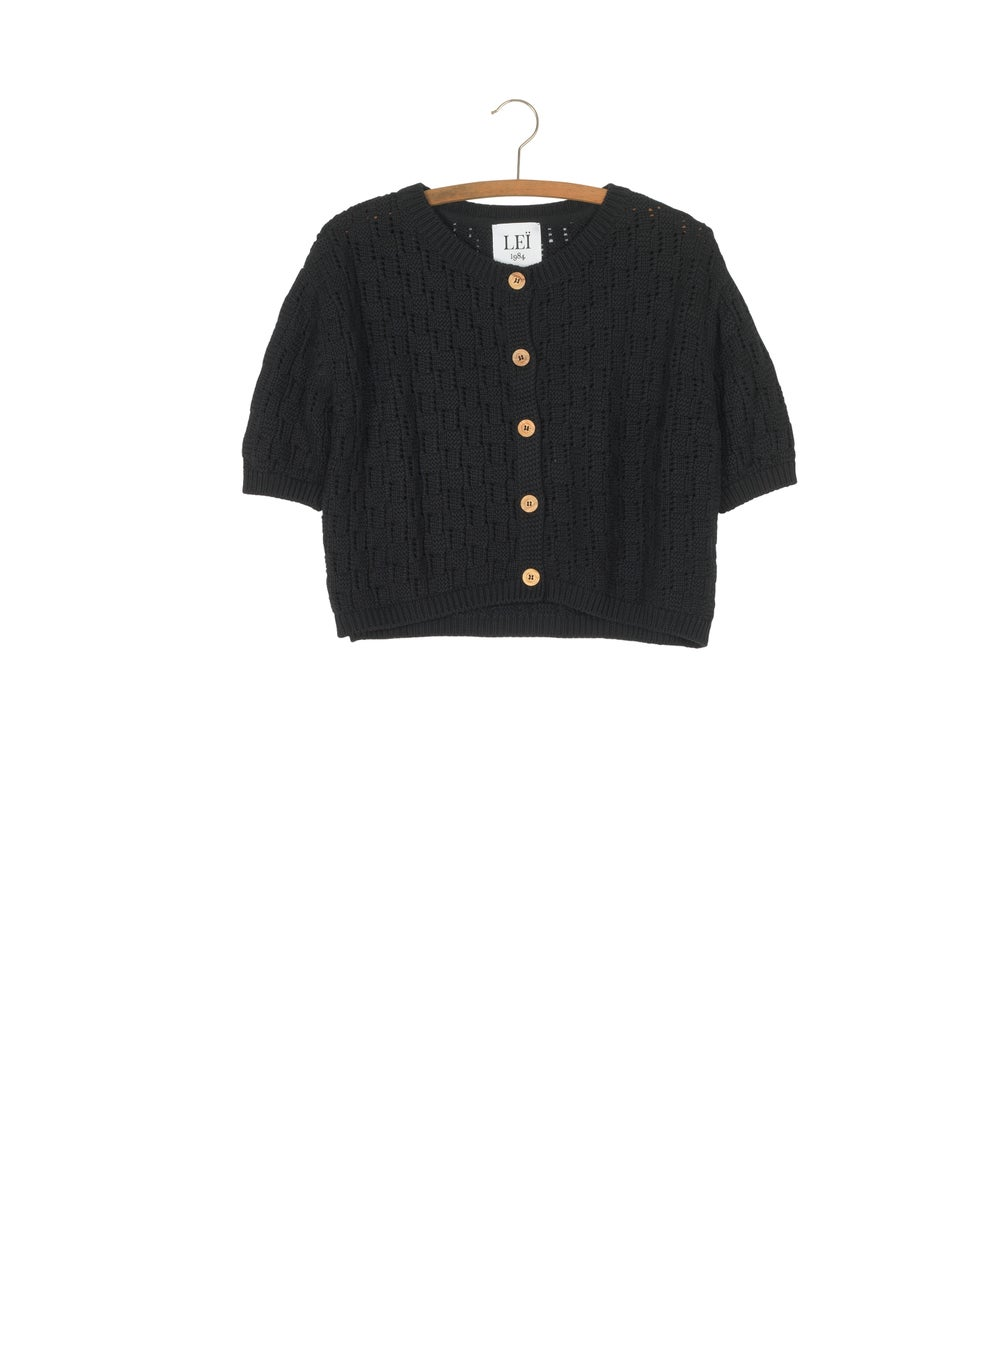 Image of Gilet ESTELLE 140€ - 60%